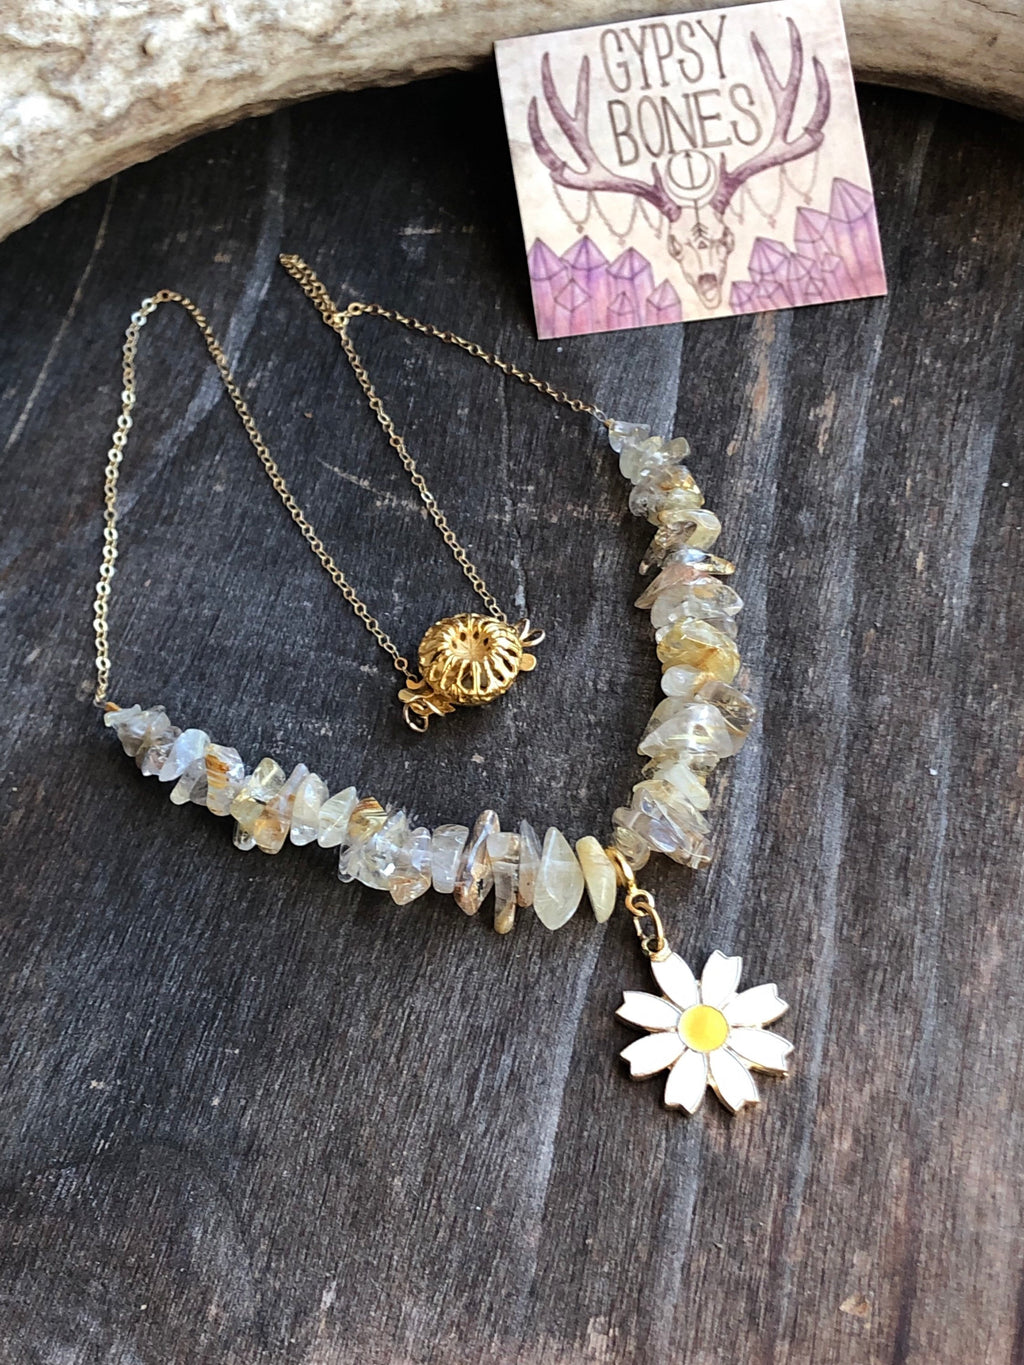 Daisy Necklace / Gold Rutilated Quartz Gemstone Chips Stack Necklace 14k Hold Filled Chain / Vintage Daisy Pendant Detachable / Versatile